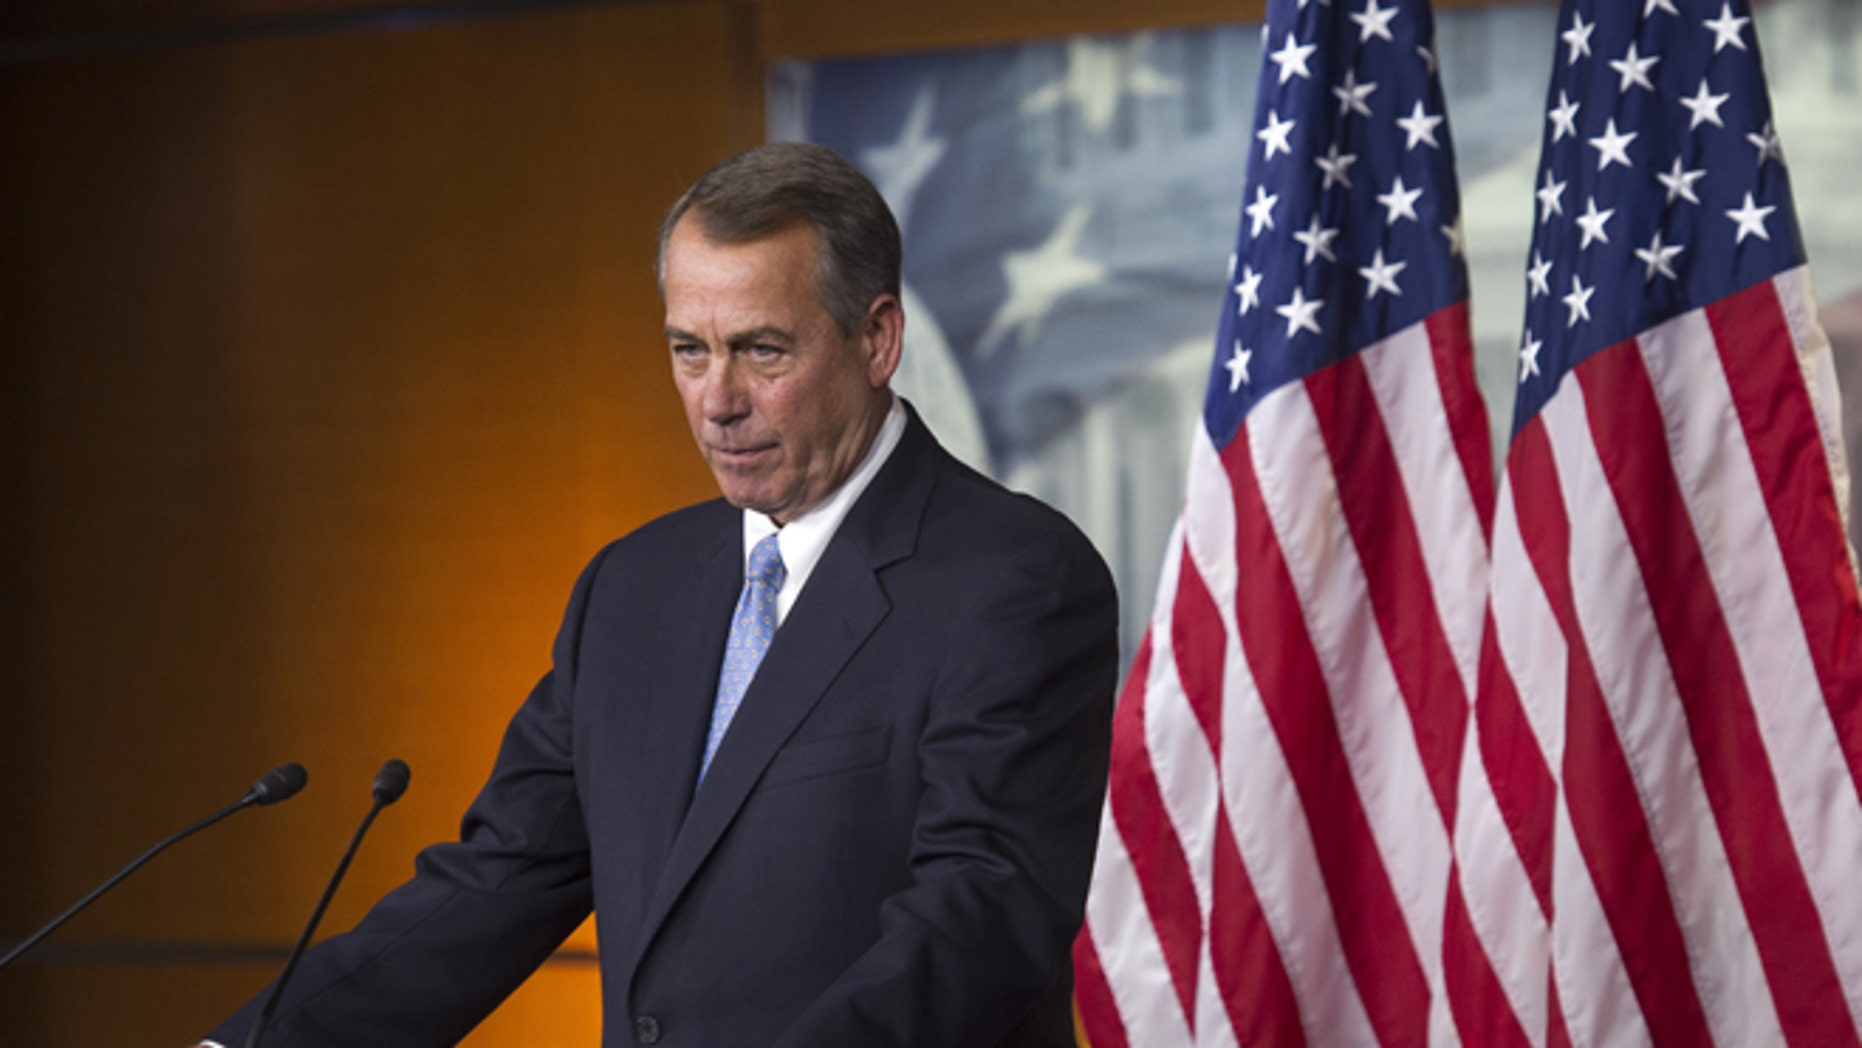 Nov. 6, 2014: House Speaker John Boehner at news conference on Capitol Hill, in Washington, D.C.